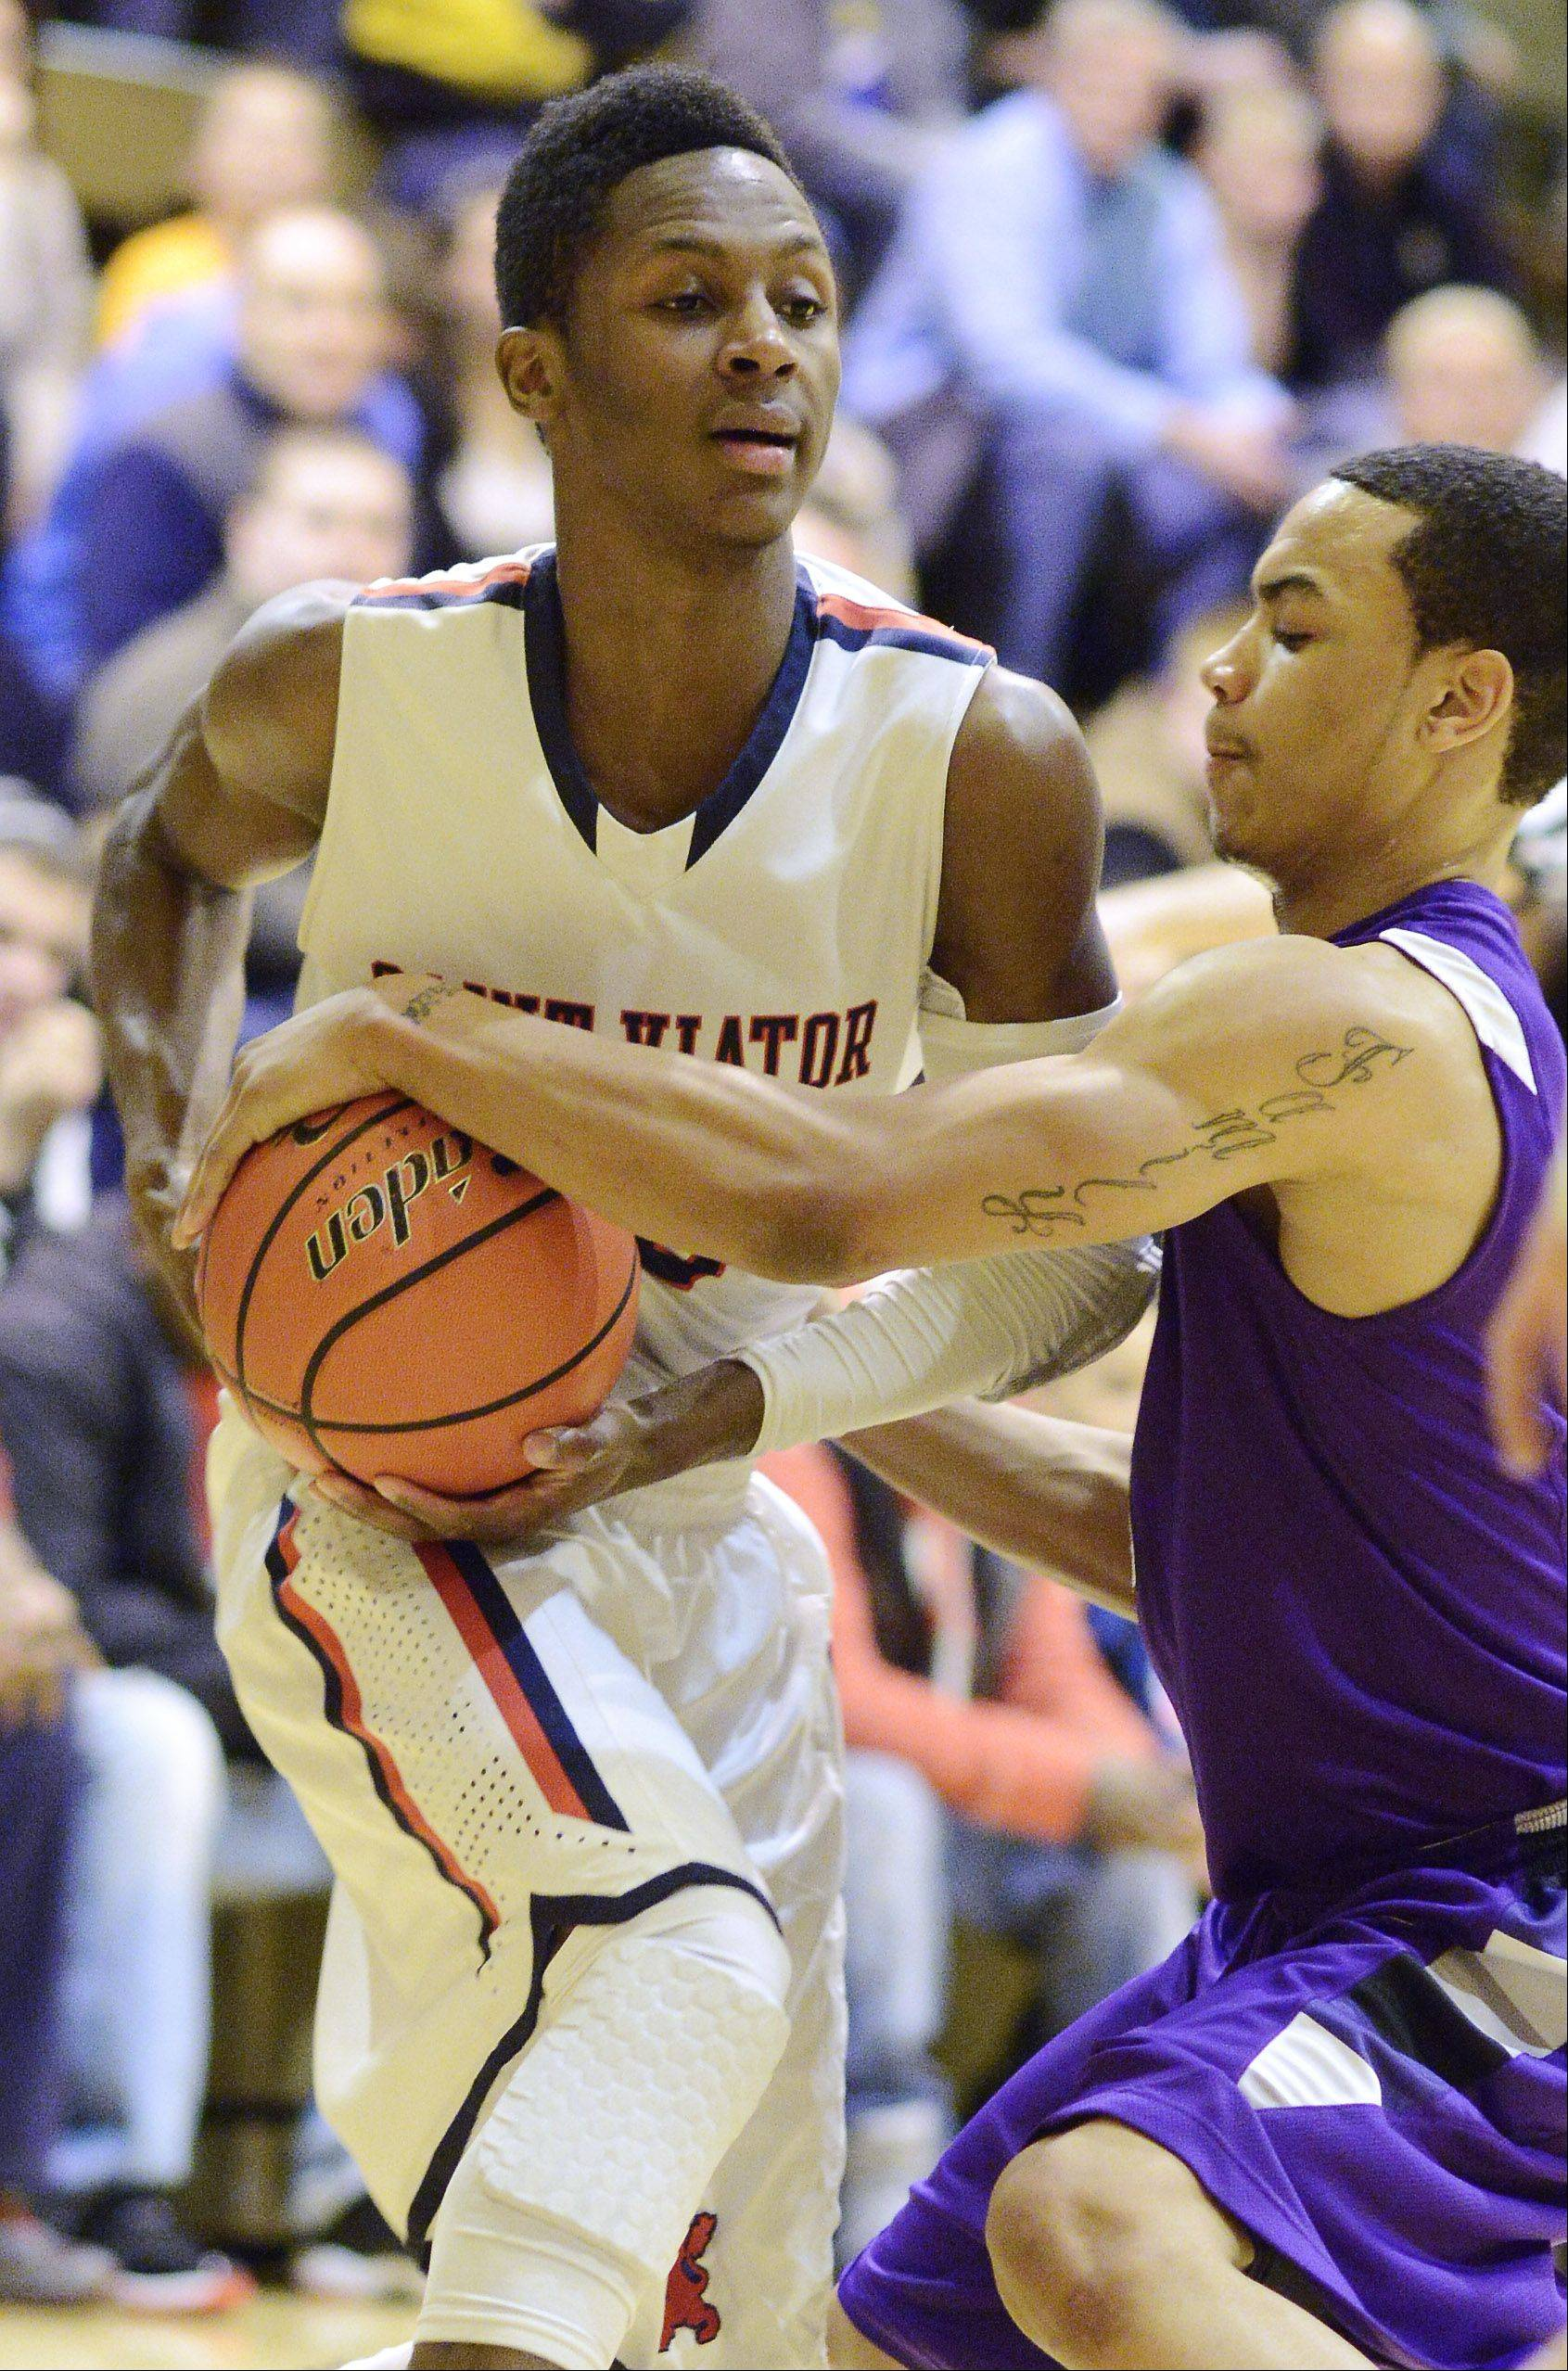 St. Viator's Ore Arogundade, left, has the ball taken away by Niles North's Lorenzo Dillard during Friday's semifinal of the Wheeling Tournament.